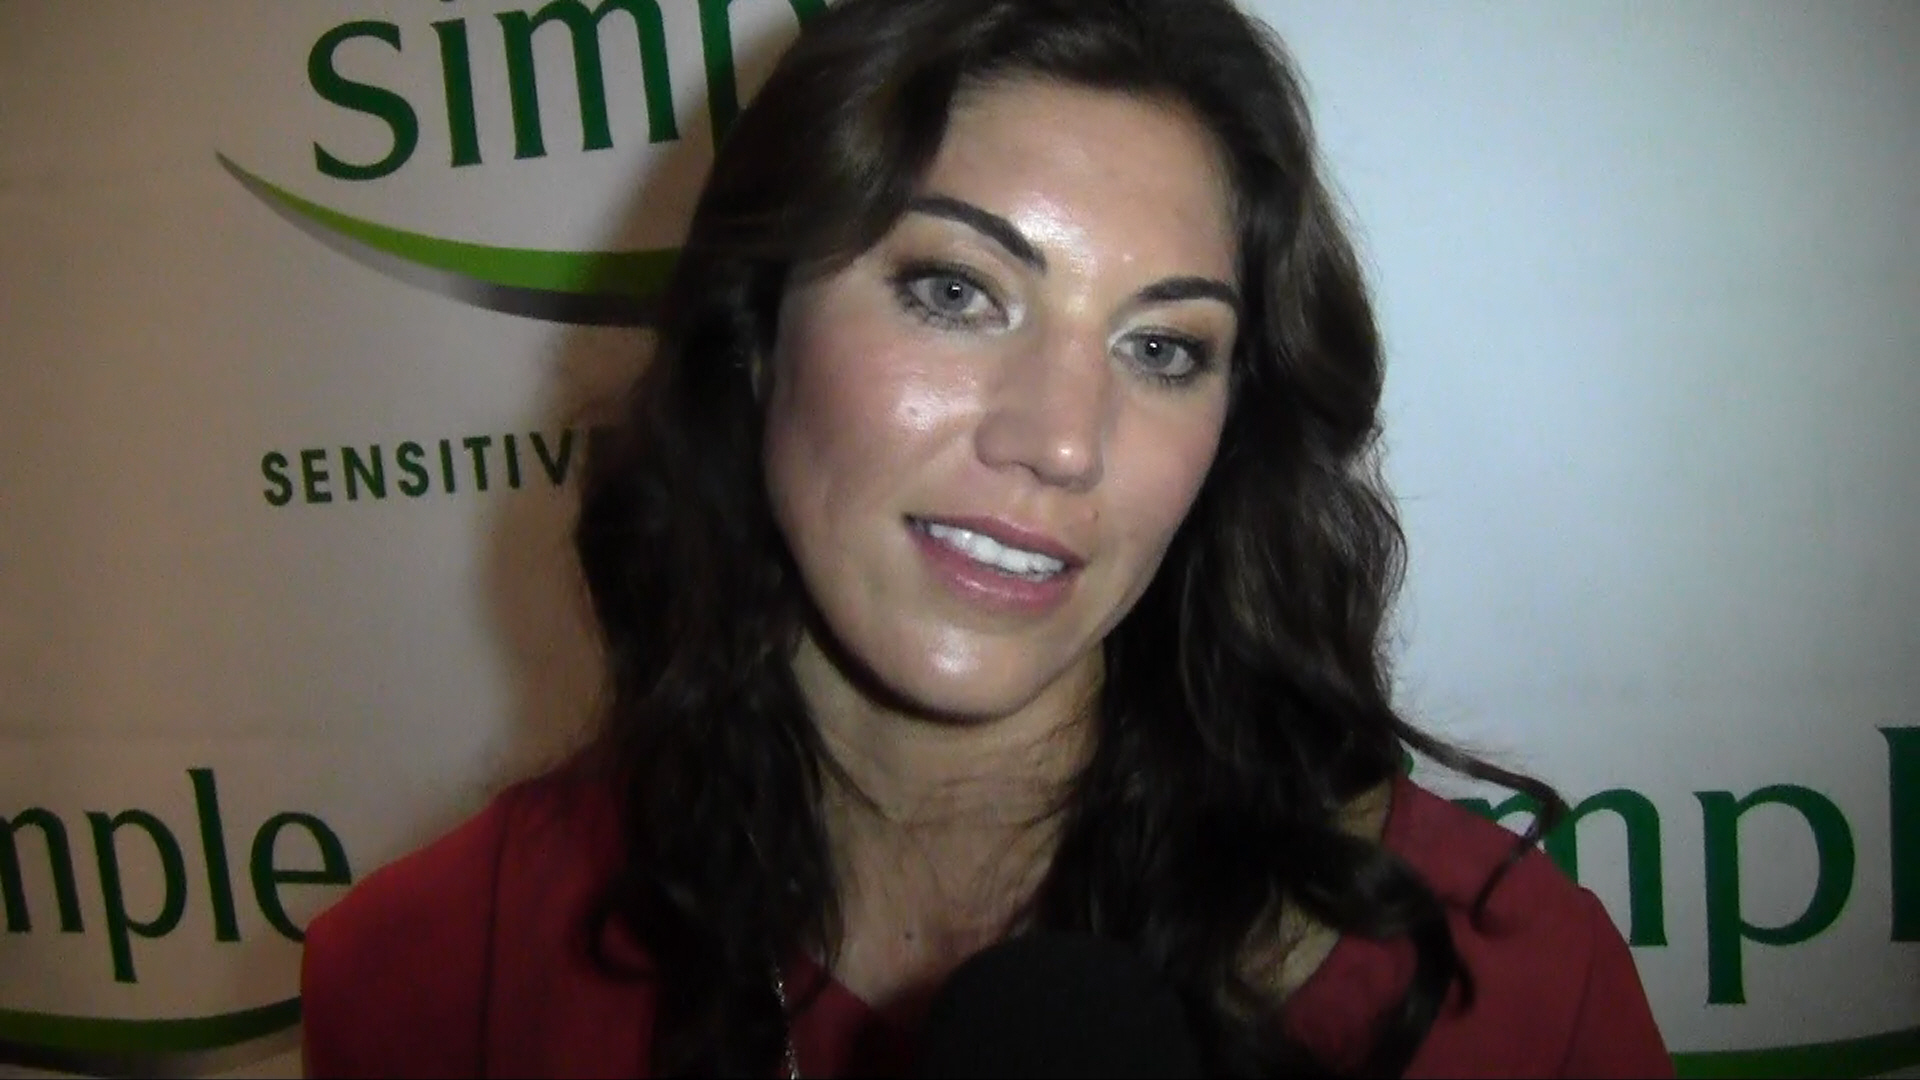 New partnership with Hope Solo - Simple Skincare